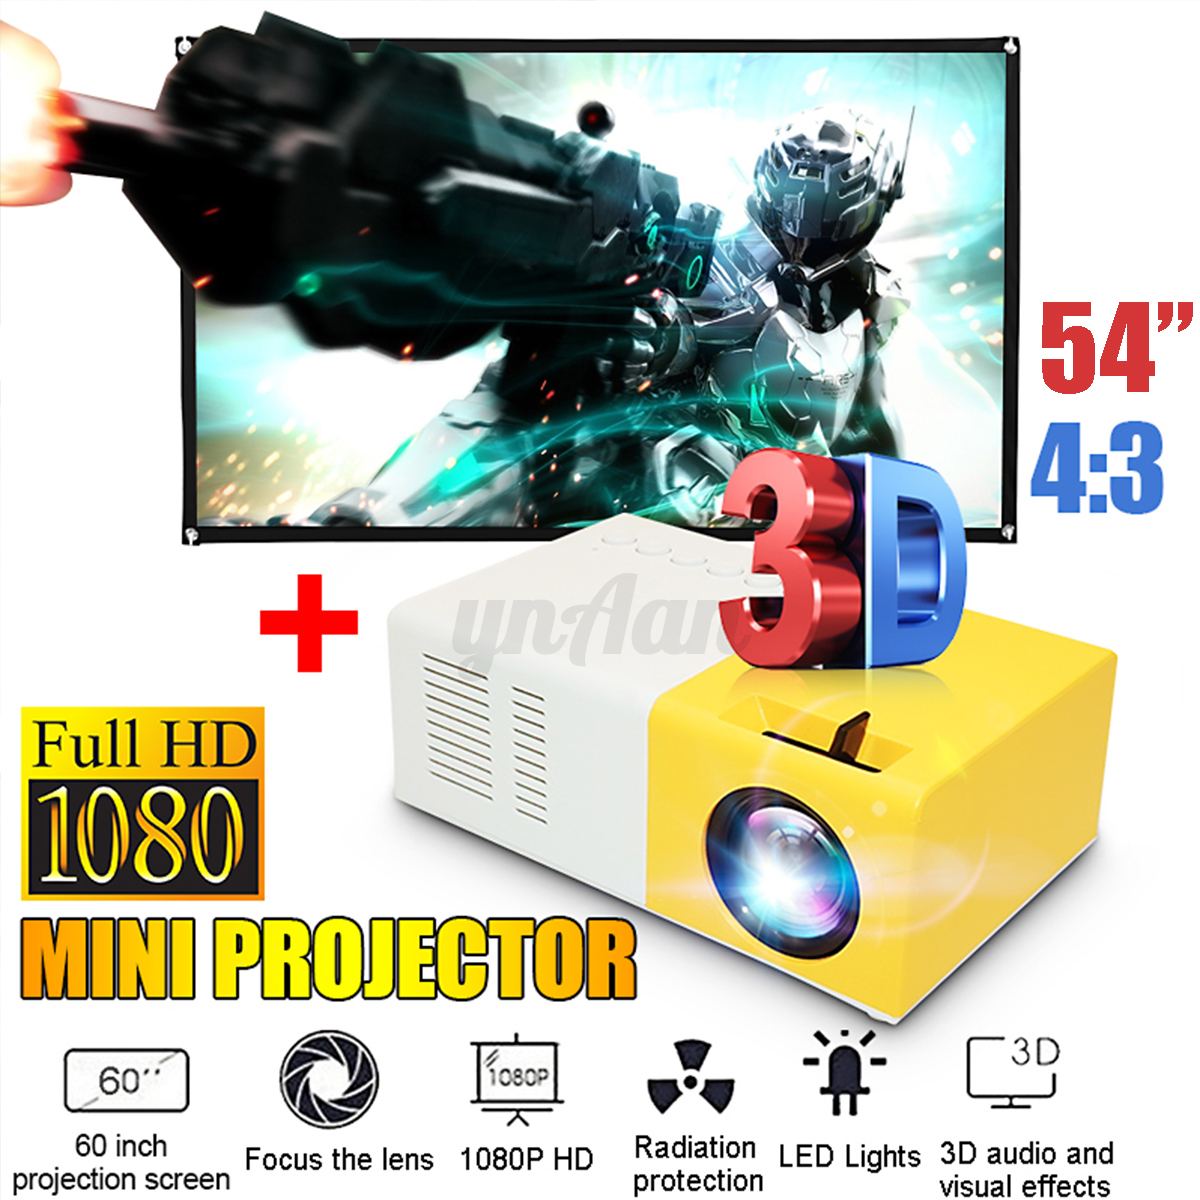 "60"" Projection Screen+ US Plug"